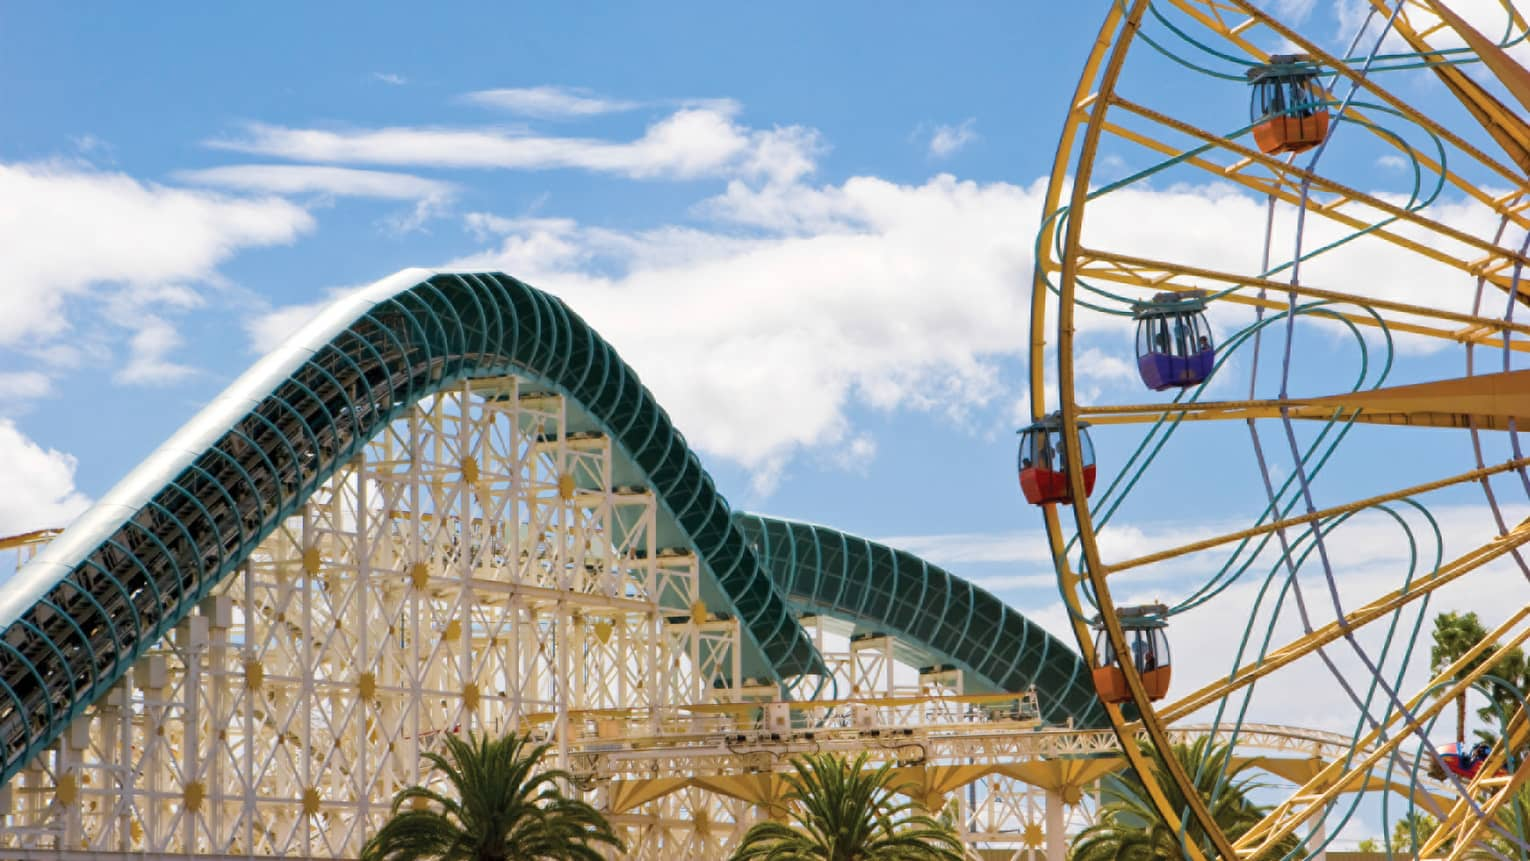 Side view of amusement park roller coaster track, ferris wheel over palm trees